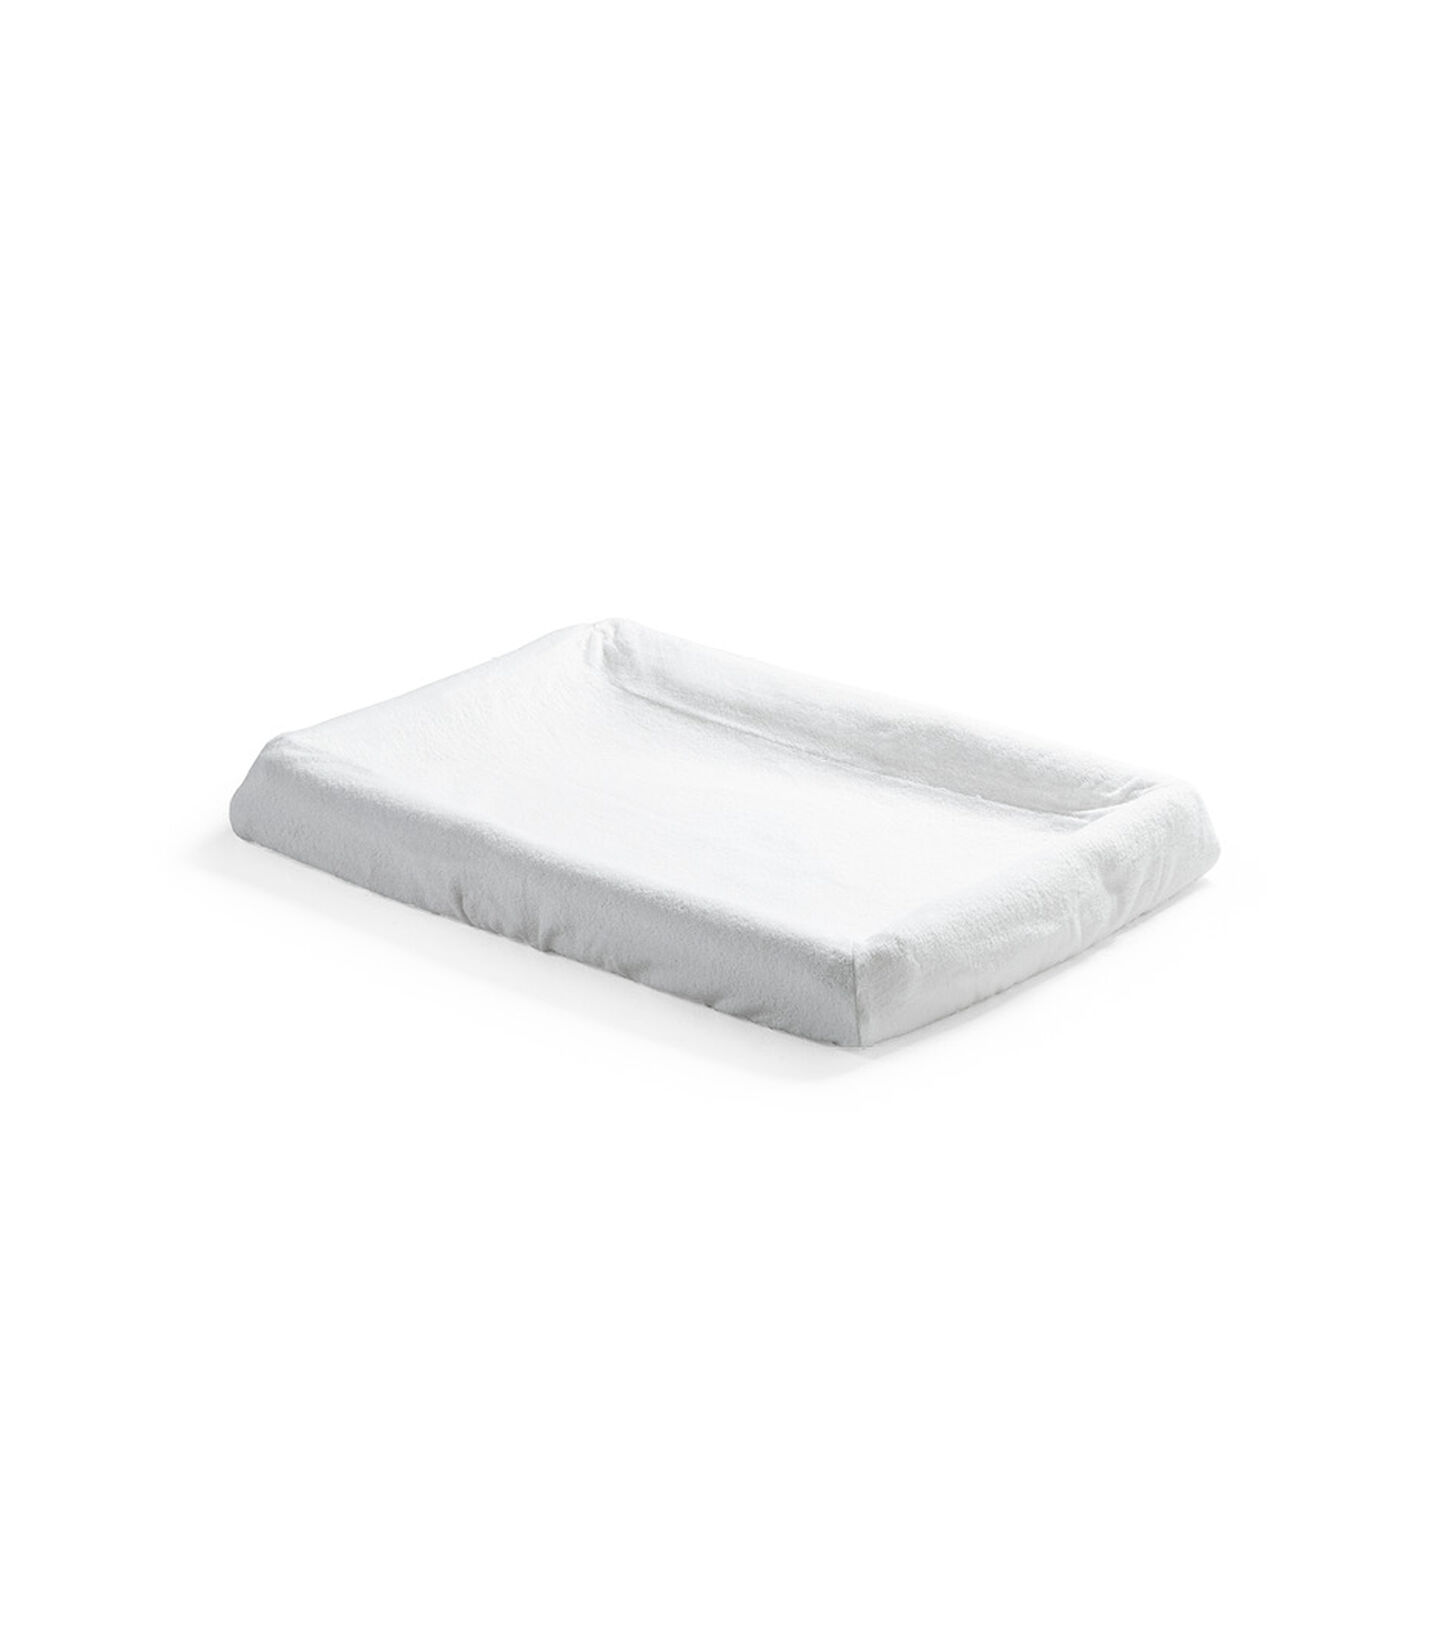 Stokke® Home™ Changer Mattress Cover. Sold separately.